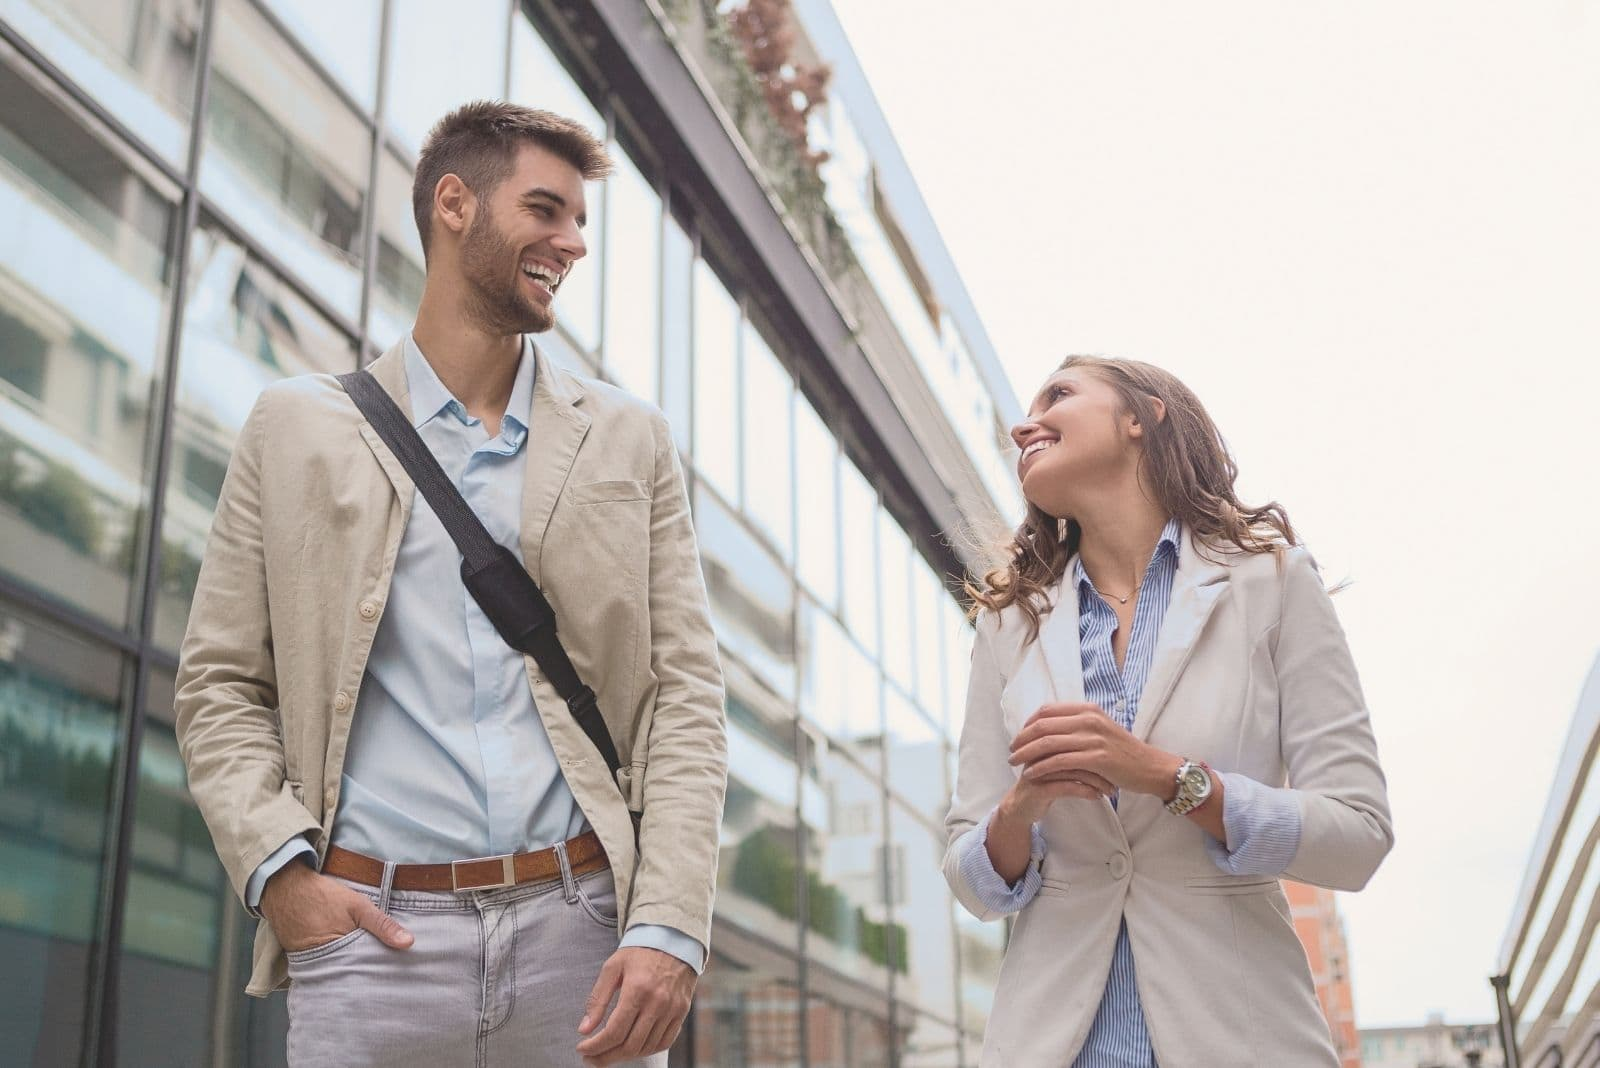 young businessman walking with a female colleague in the street outside the building